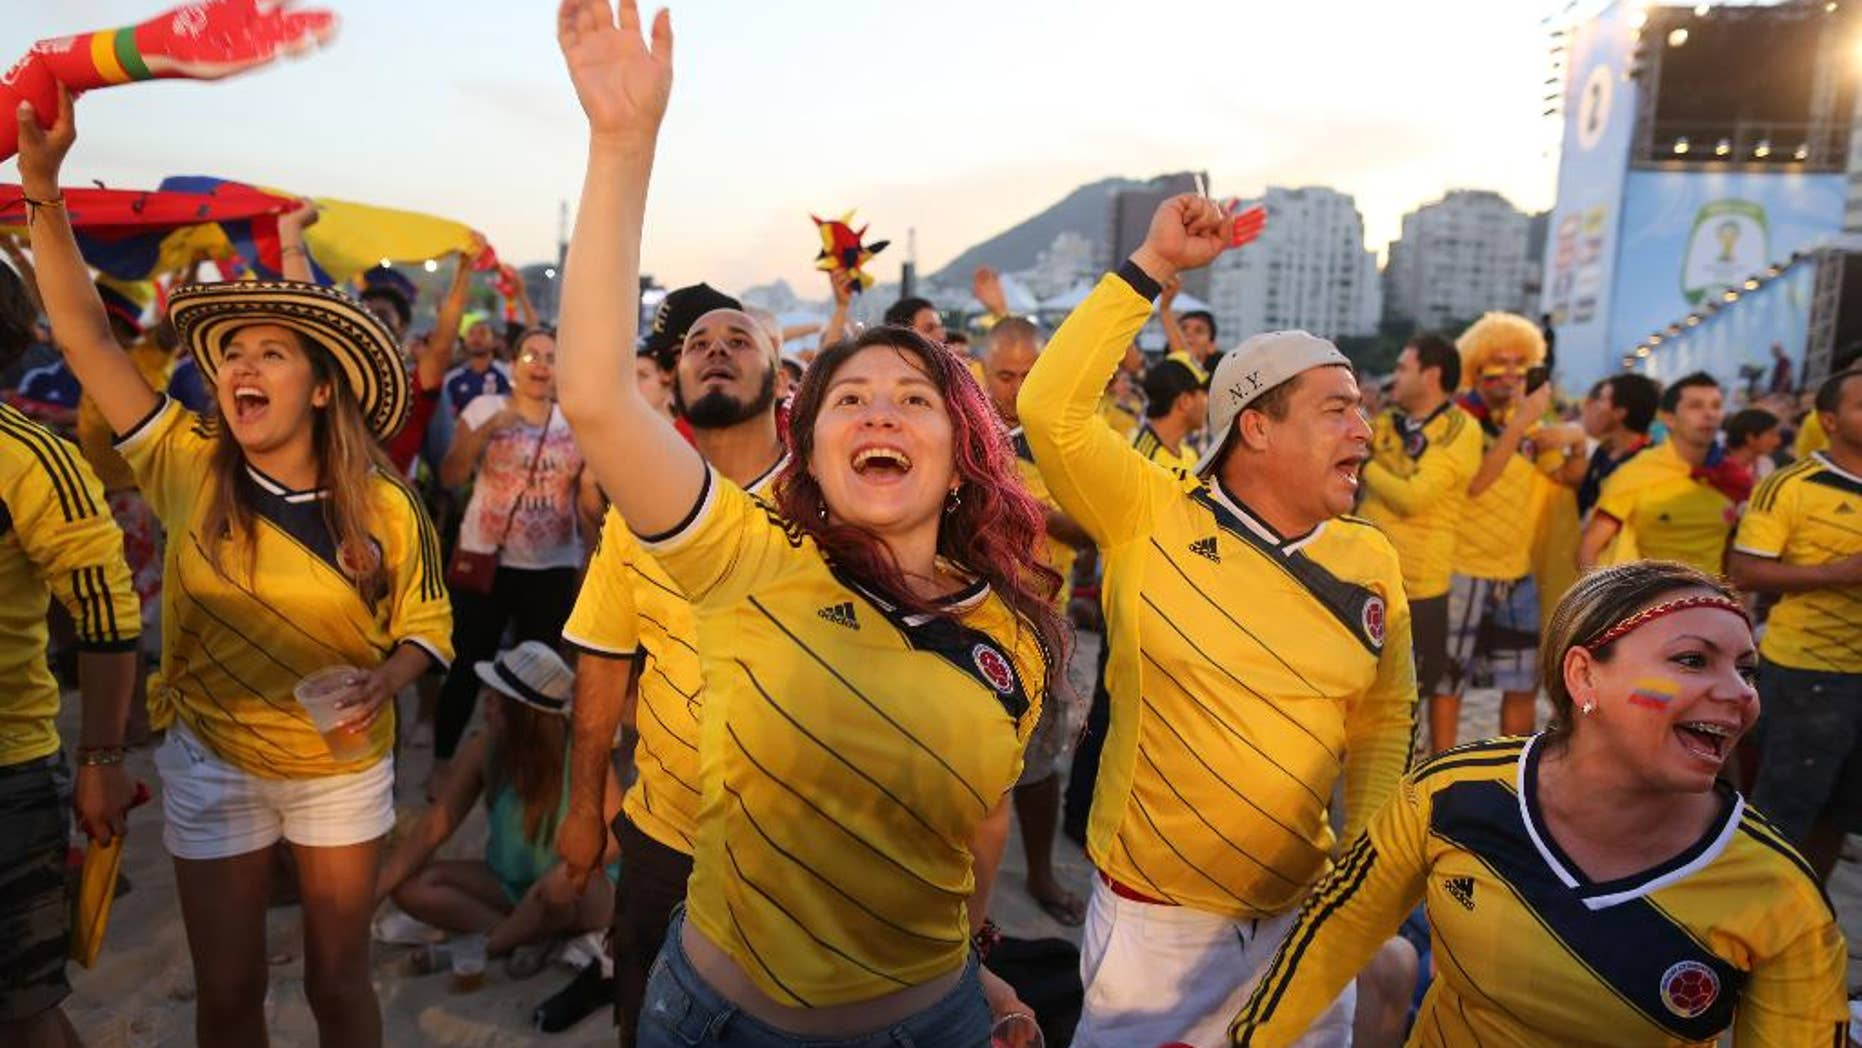 Colombia soccer fans celebrate the goal scored by their team as they watch a live telecast of their team's World Cup match with Japan inside the FIFA Fan Fest area on Copacabana beach, in Rio de Janeiro, Brazil, Tuesday, June 24, 2014. After 12 days of competition, Colombia has already reached the second round with a game to spare, won two matches at the tournament for the first time, and played with a vigor that has made the team one of the most exciting to watch in Brazil. (AP Photo/Leo Correa)